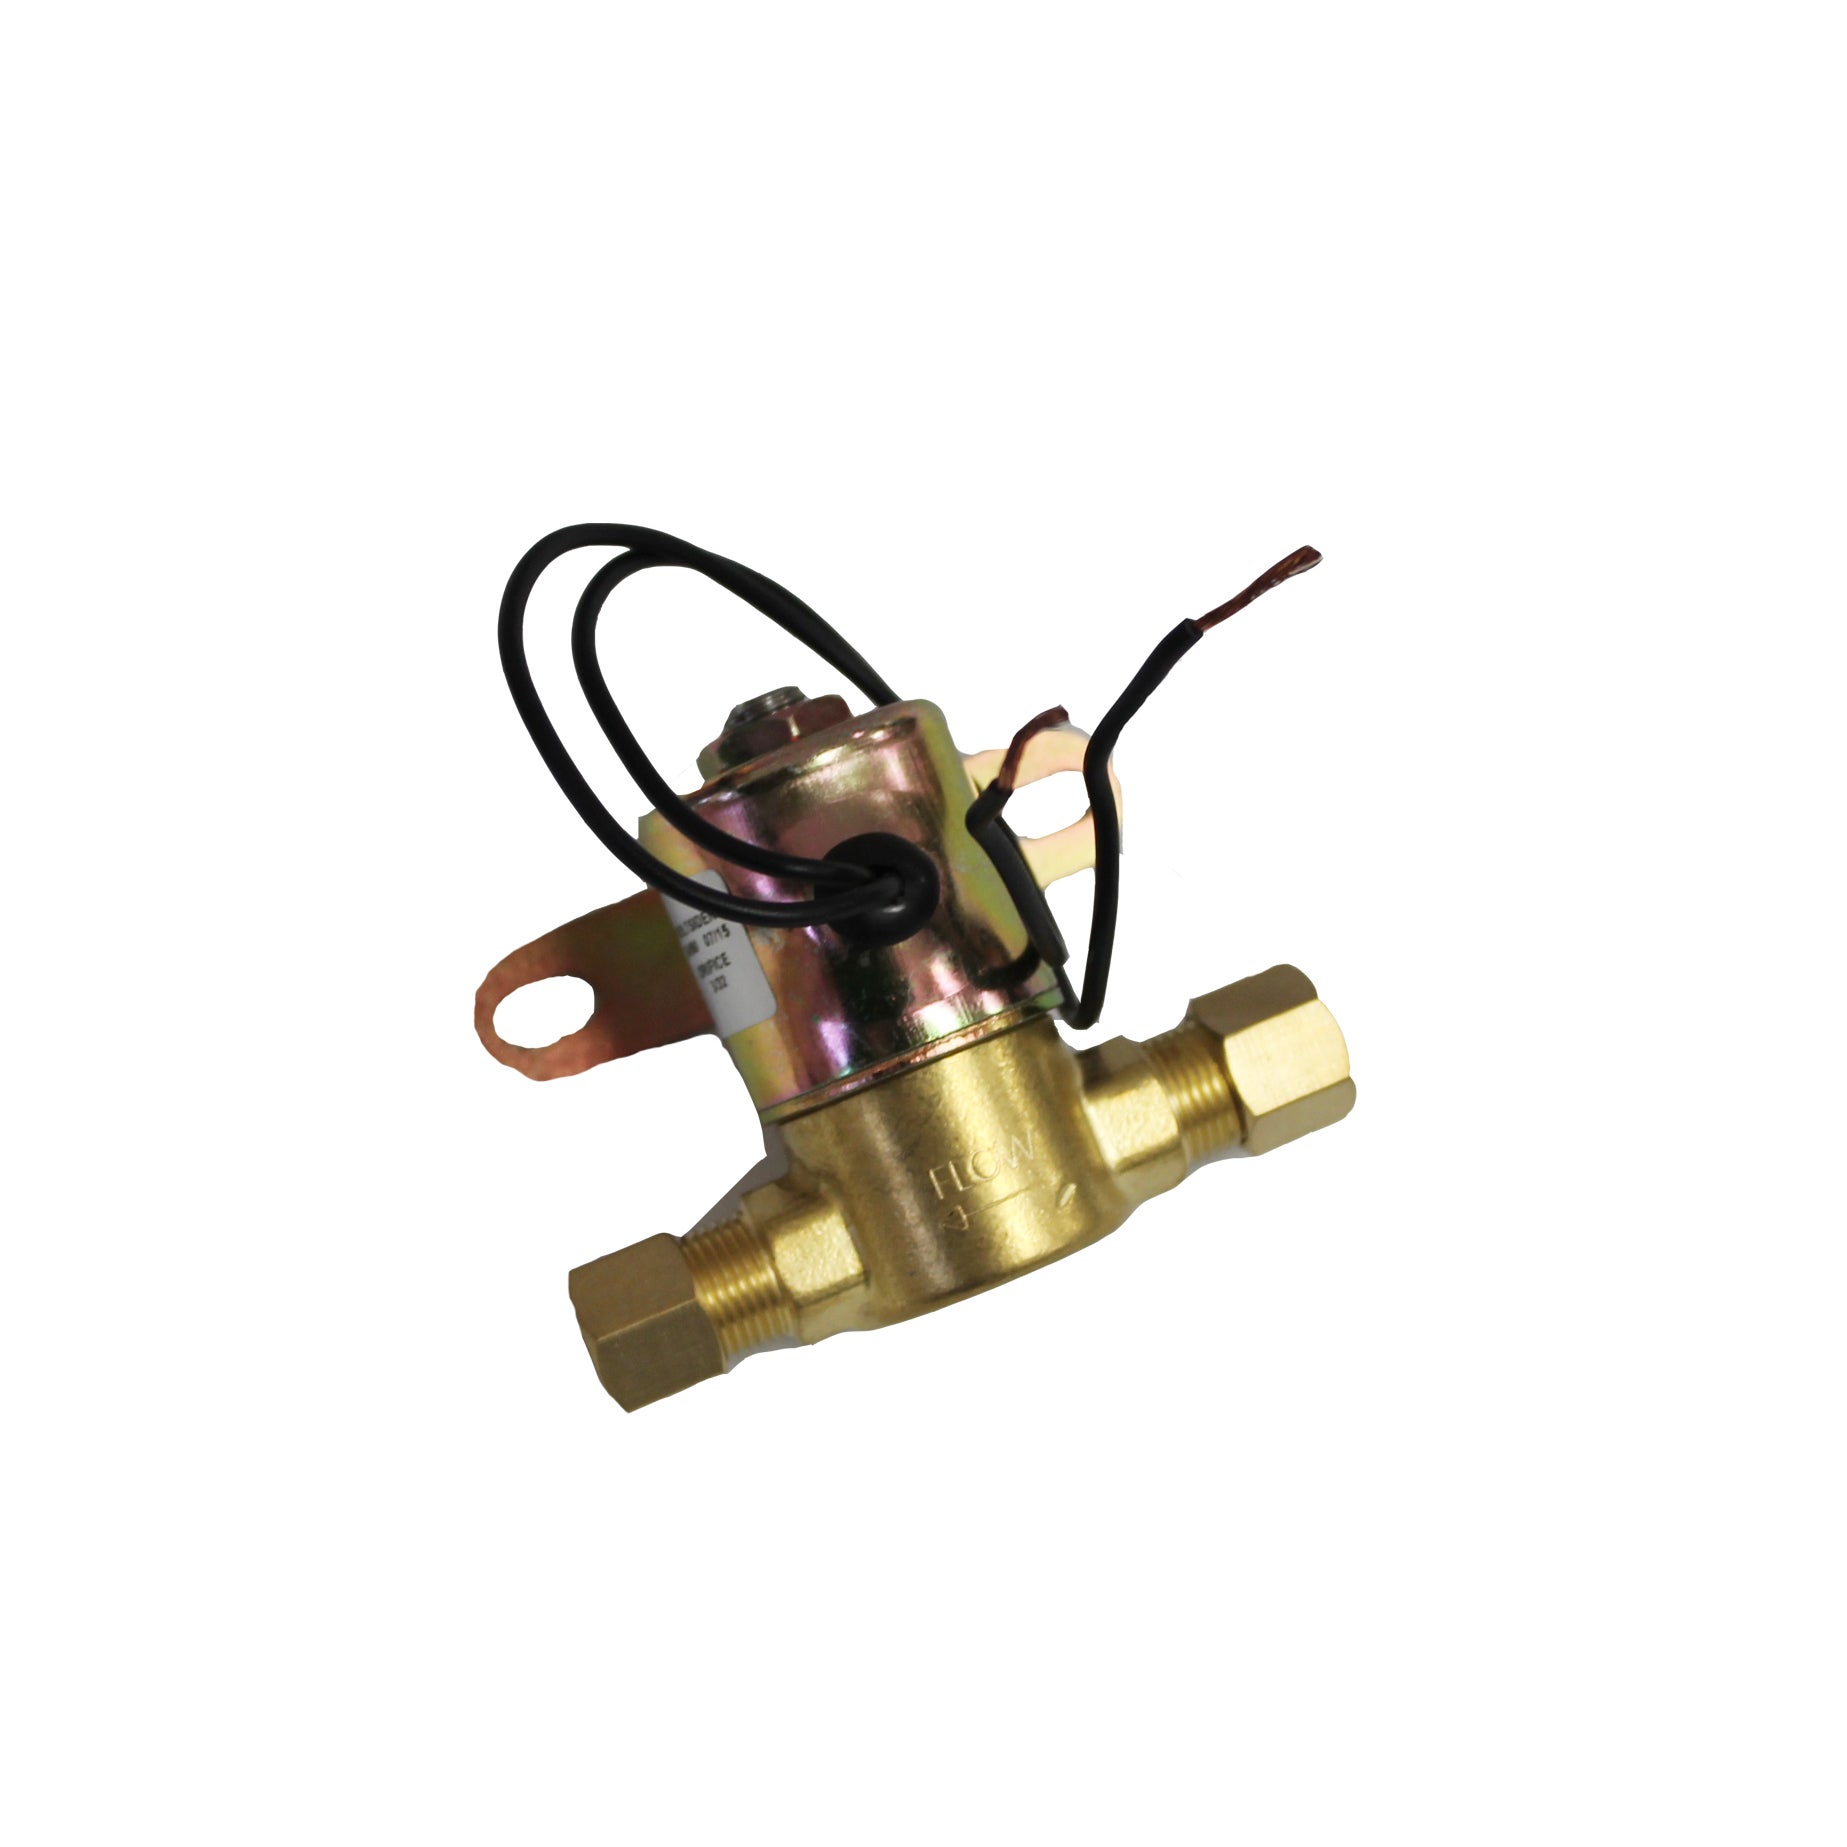 Crucial Universal Solenoid Valve for Humidifiers, Part # ...